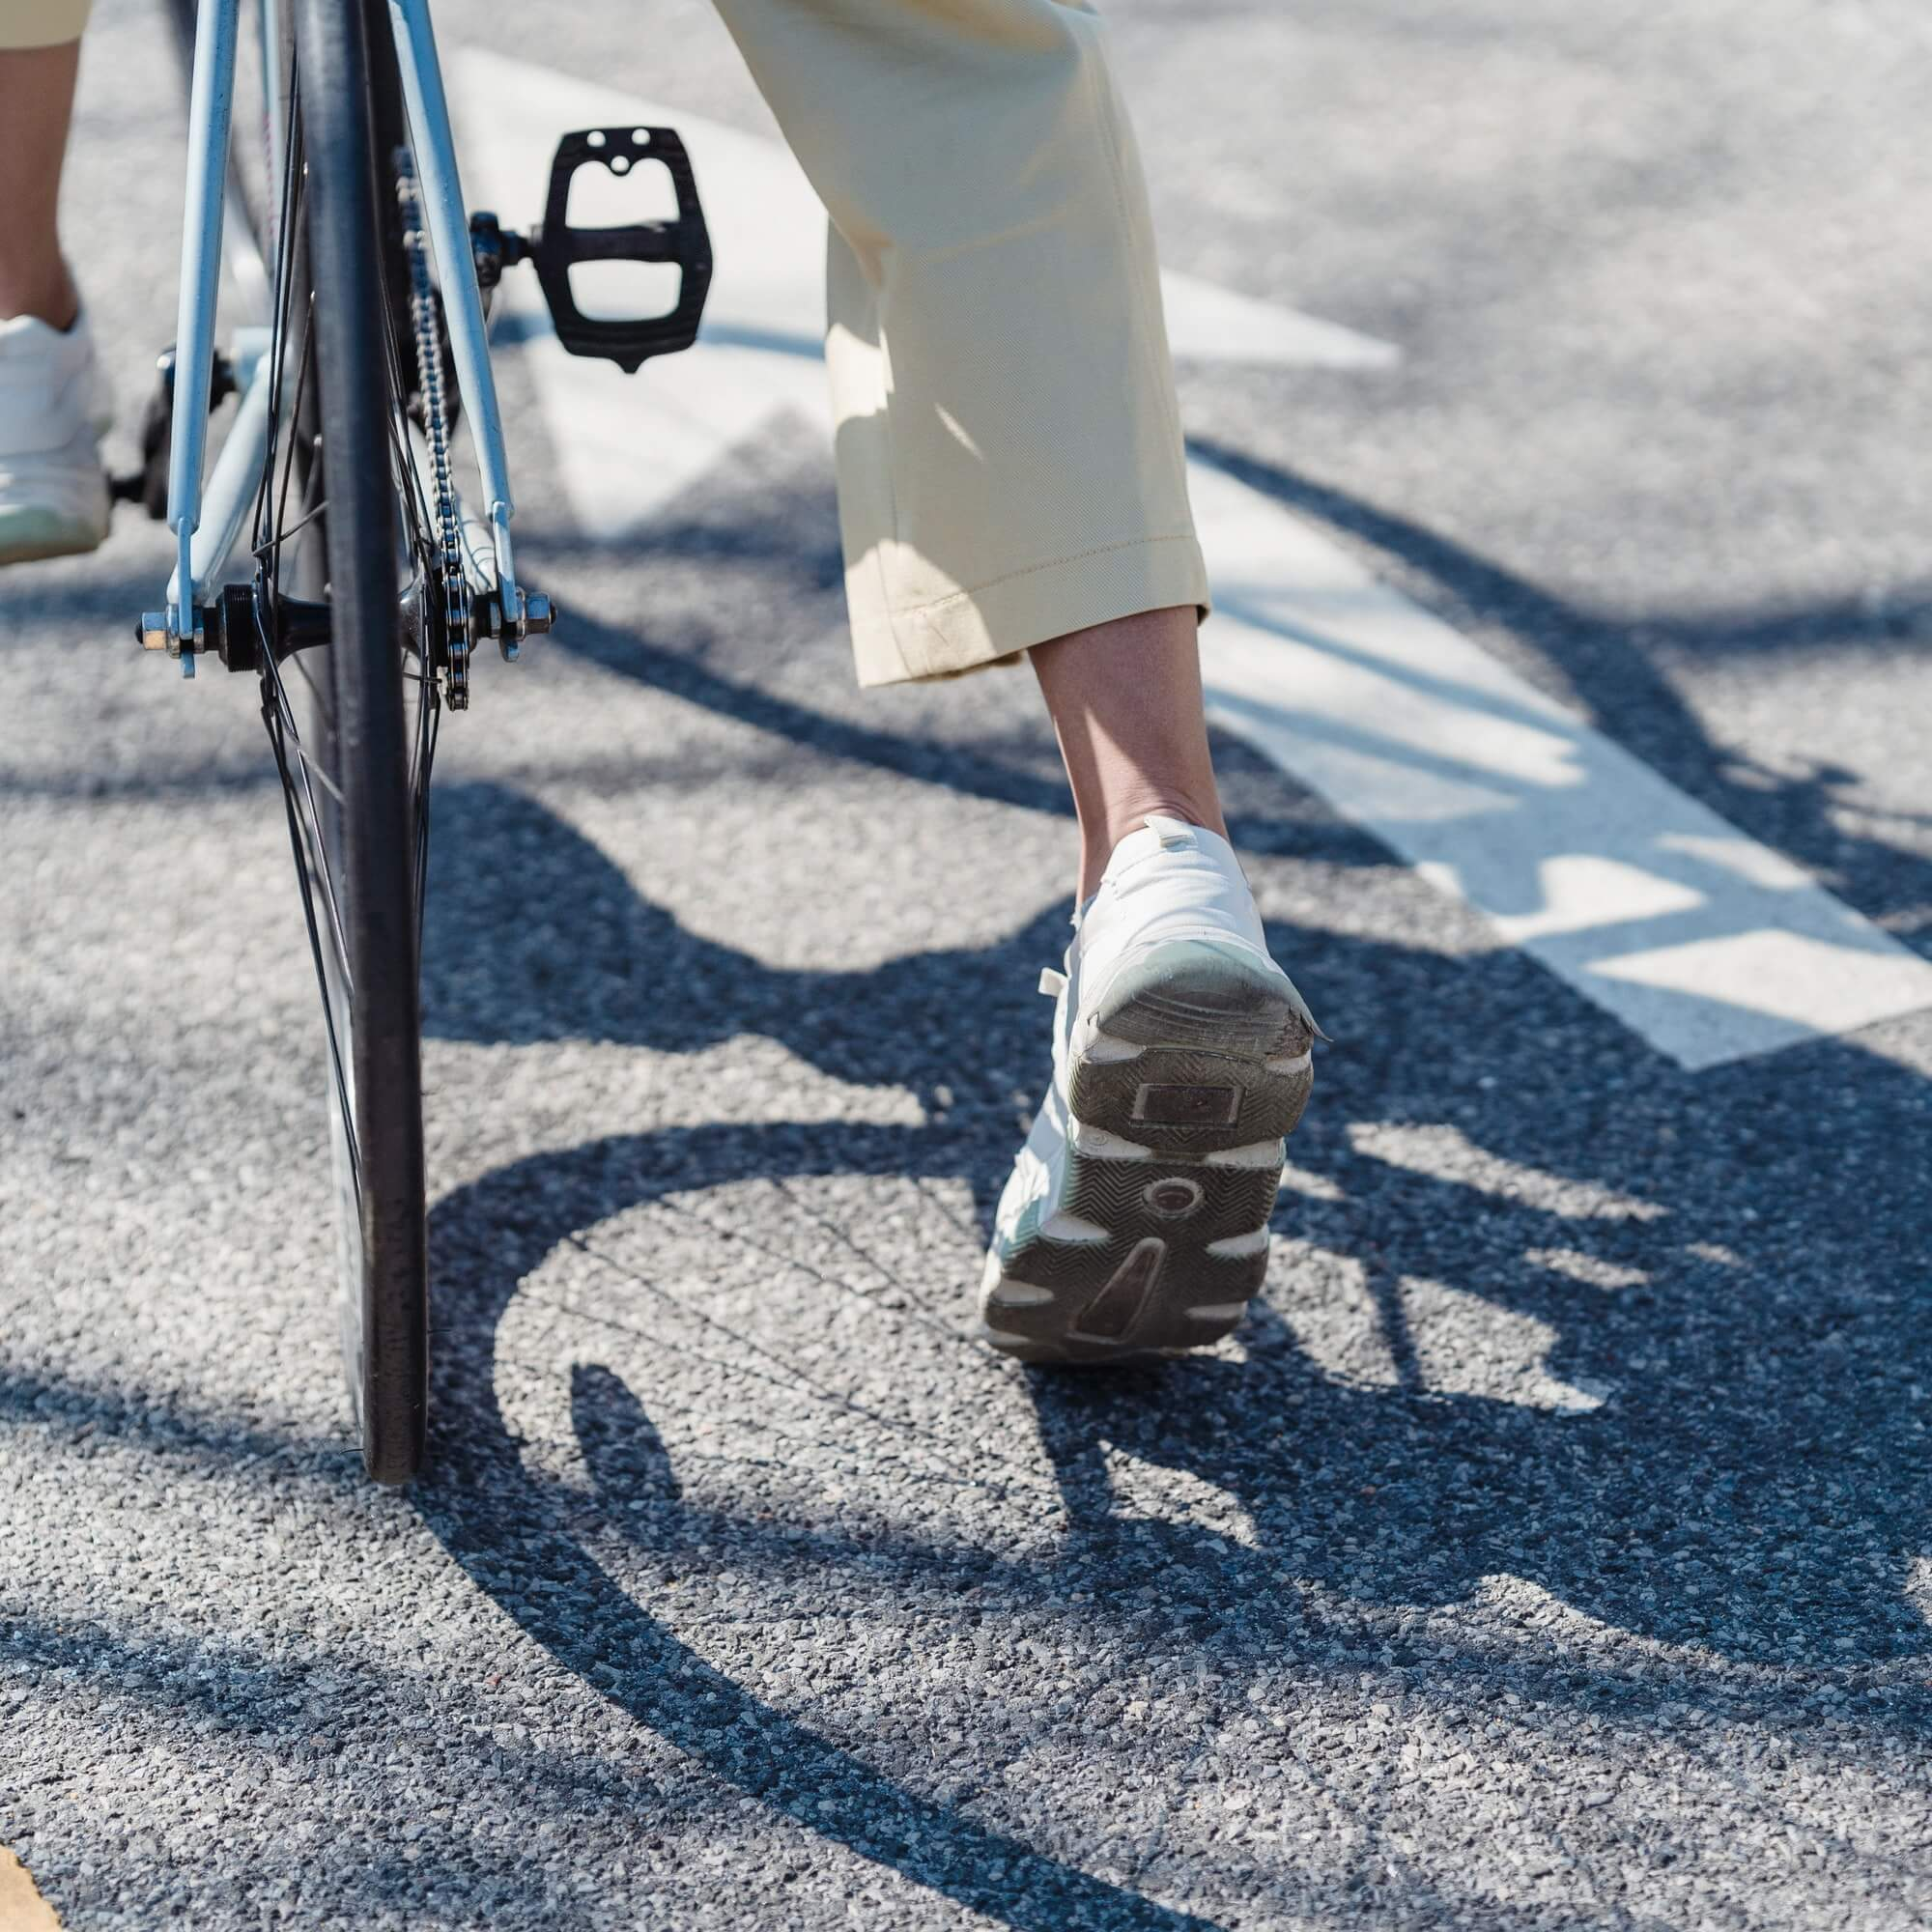 Person setting off on a bike, wearing white trainers, shadow of the bicycle wheel on the road.